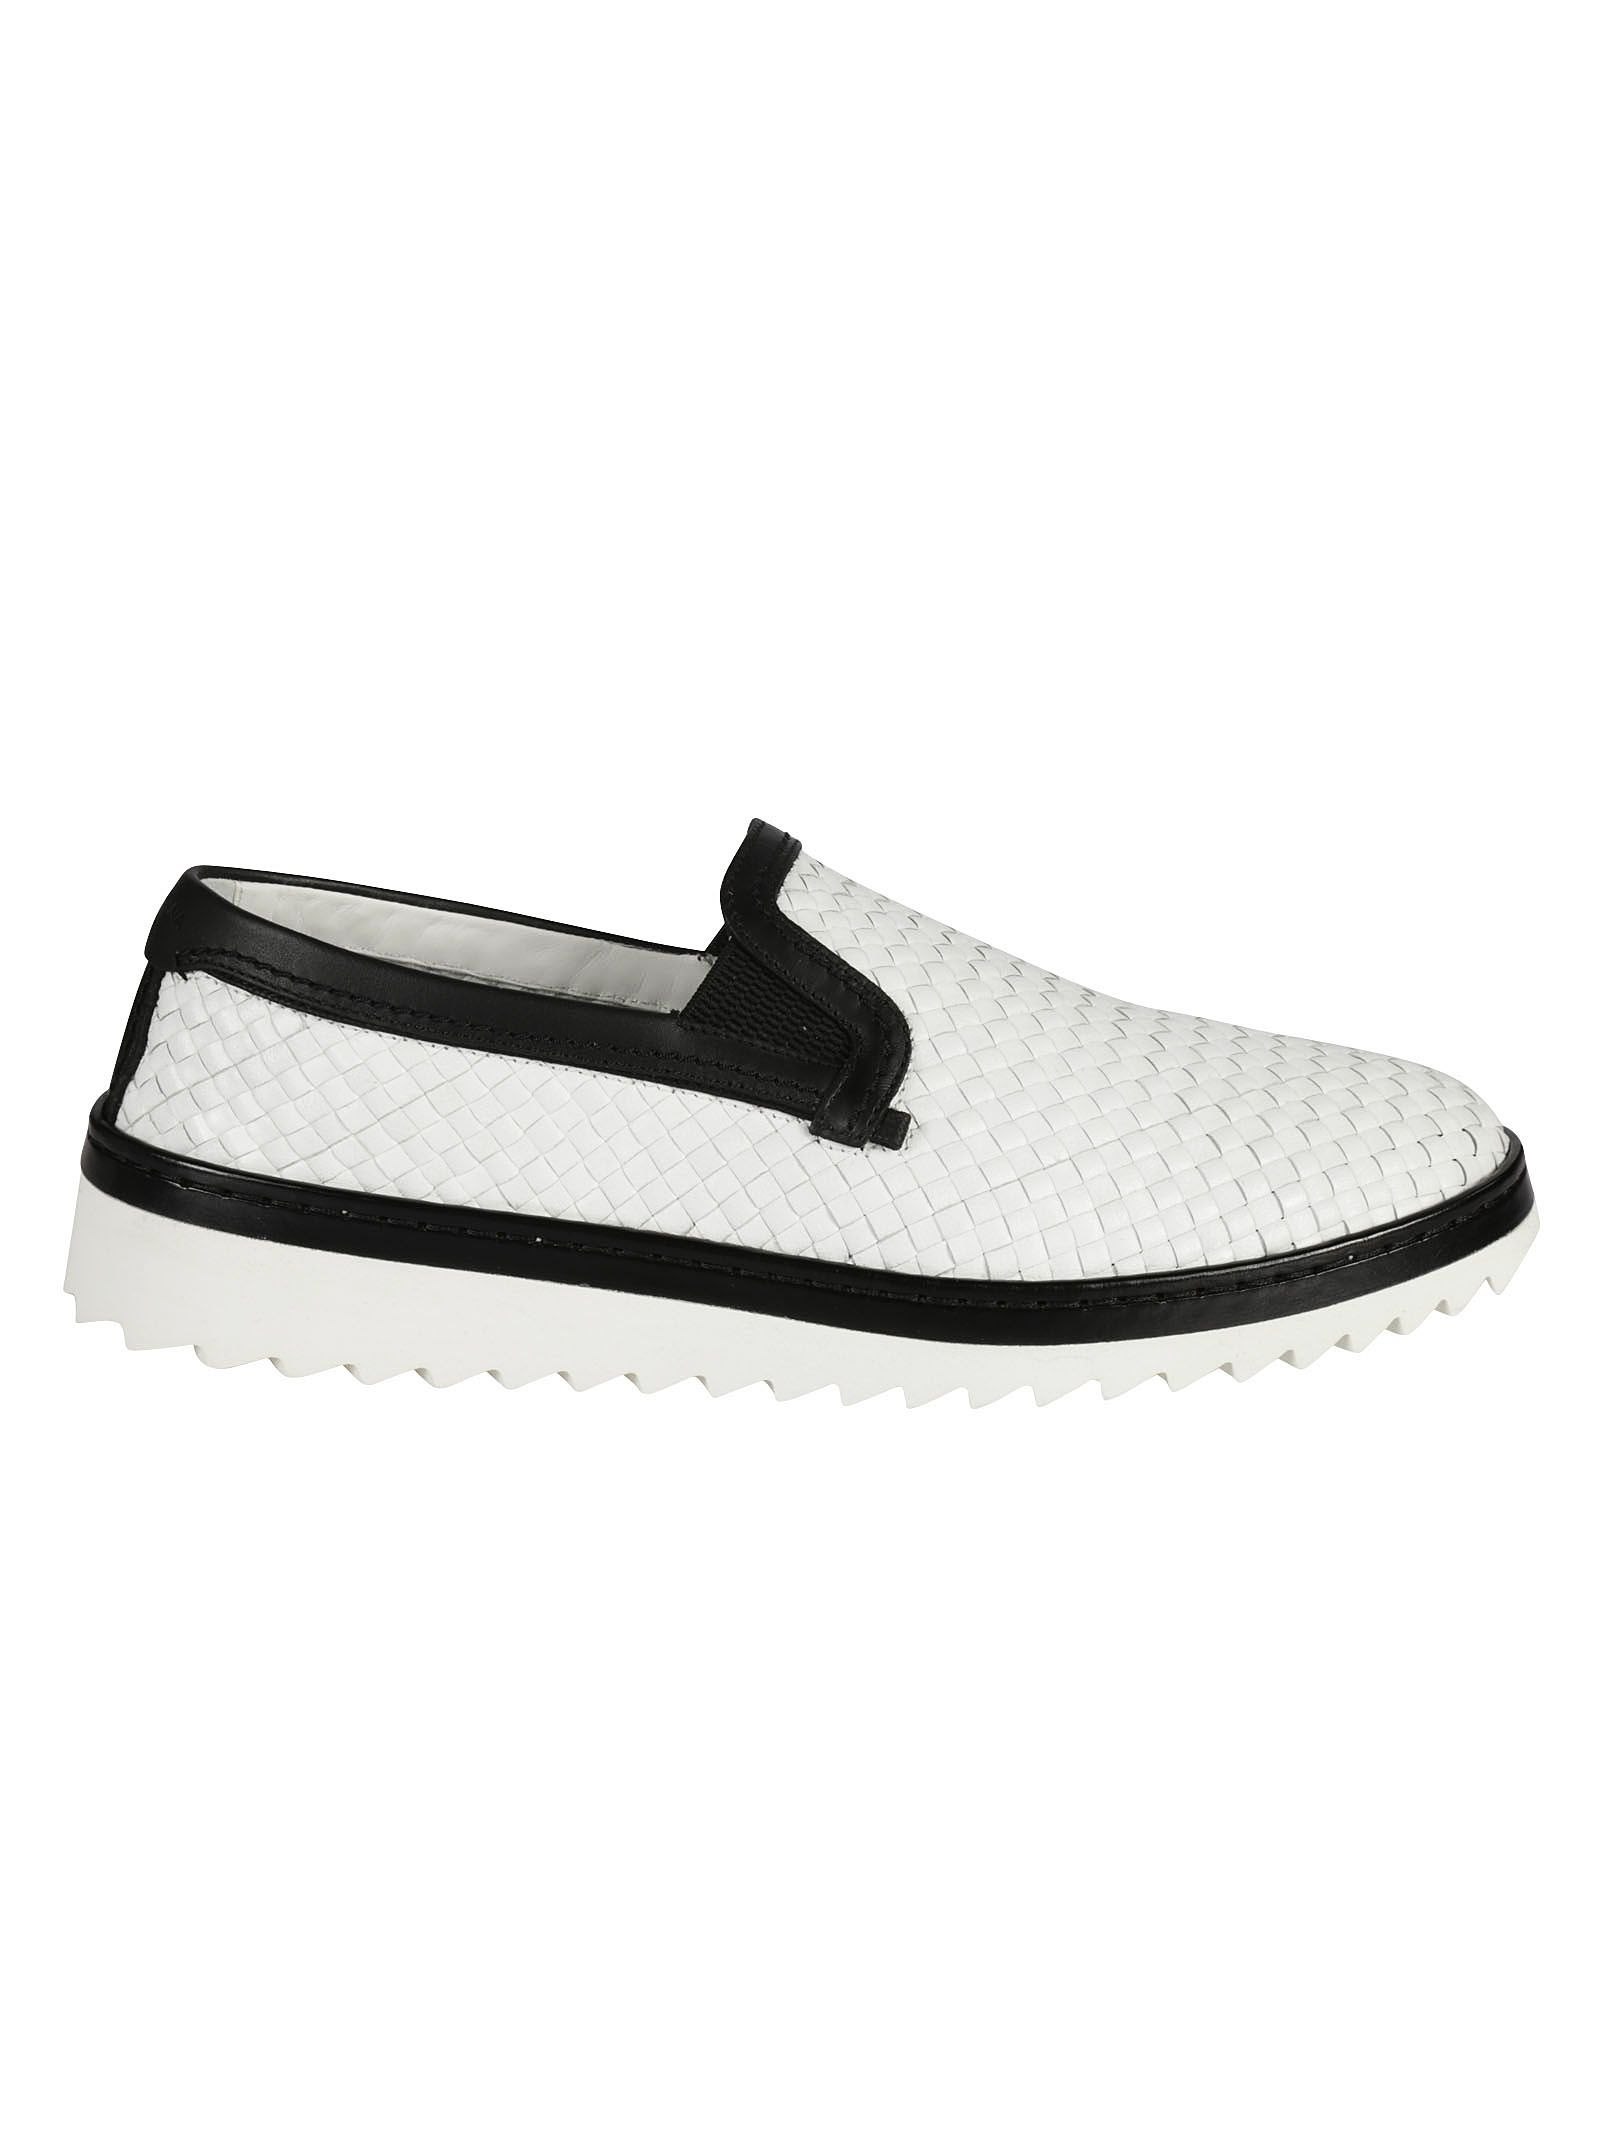 outlet clearance Dolce & Gabbana woven slip-on sneakers quality from china cheap shop YQION